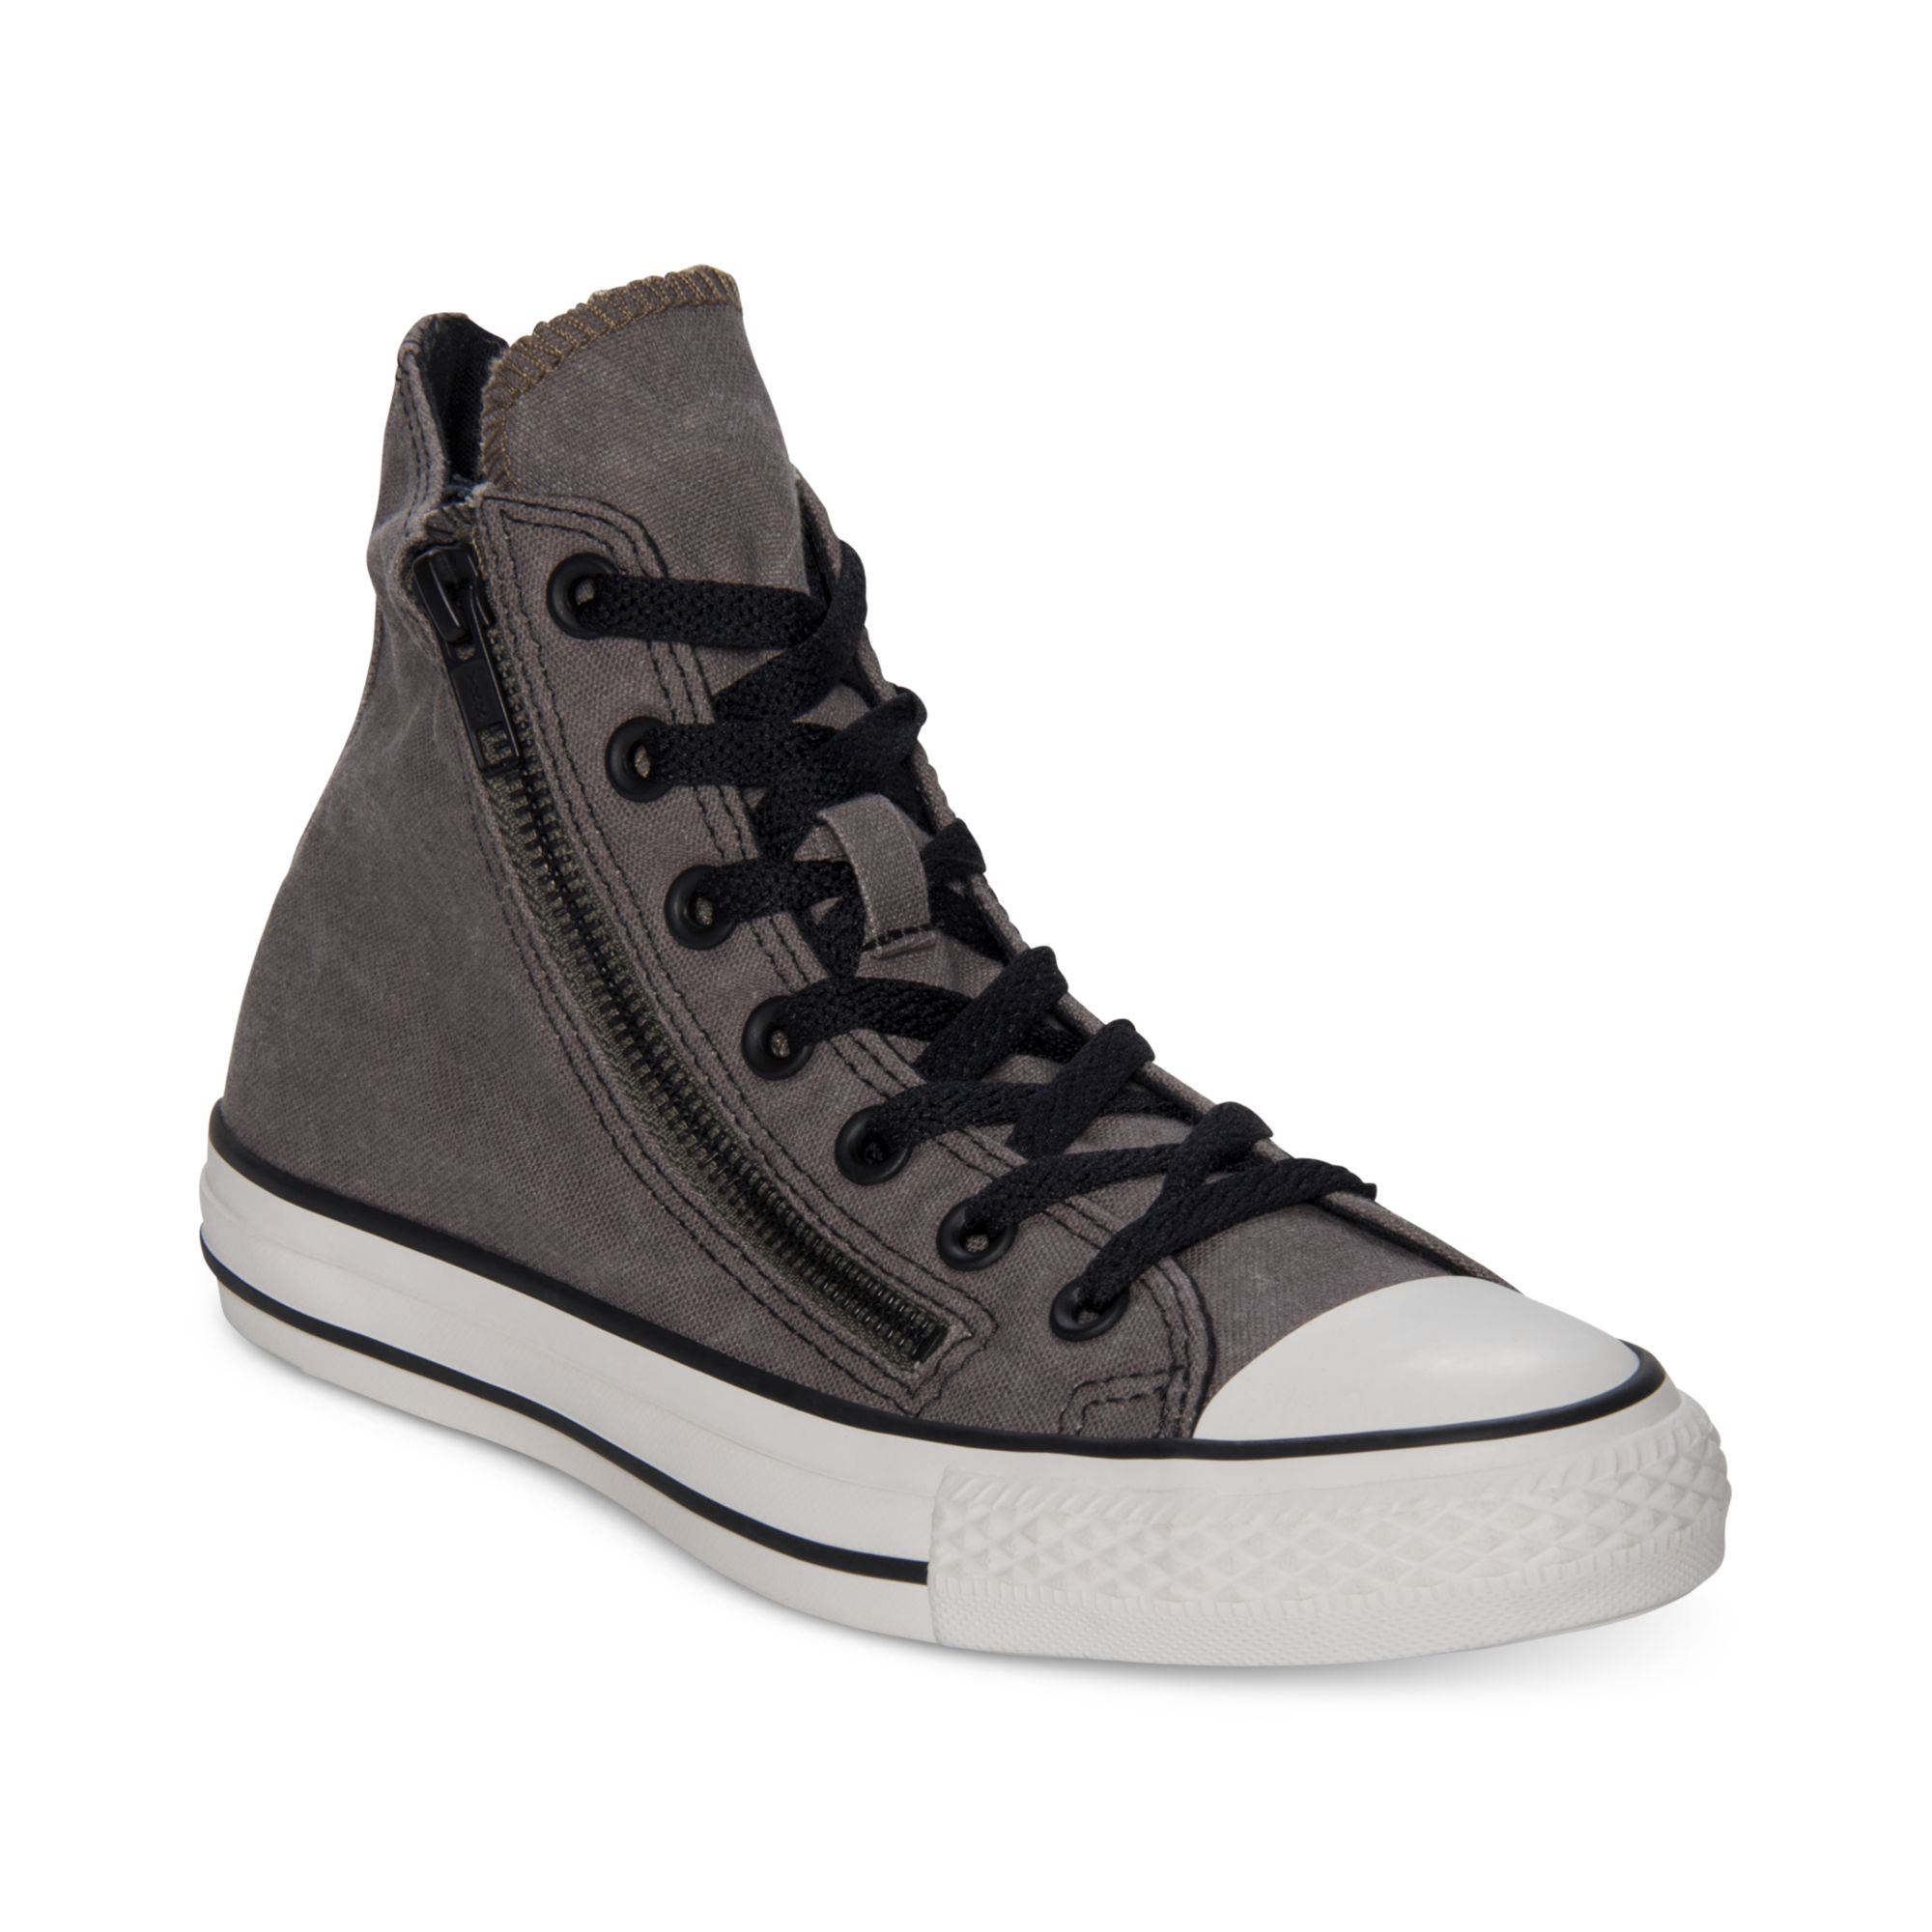 7279a2bba087c Converse Gray Chuck Taylor All Star Double Zip Hi Casual Sneakers for men